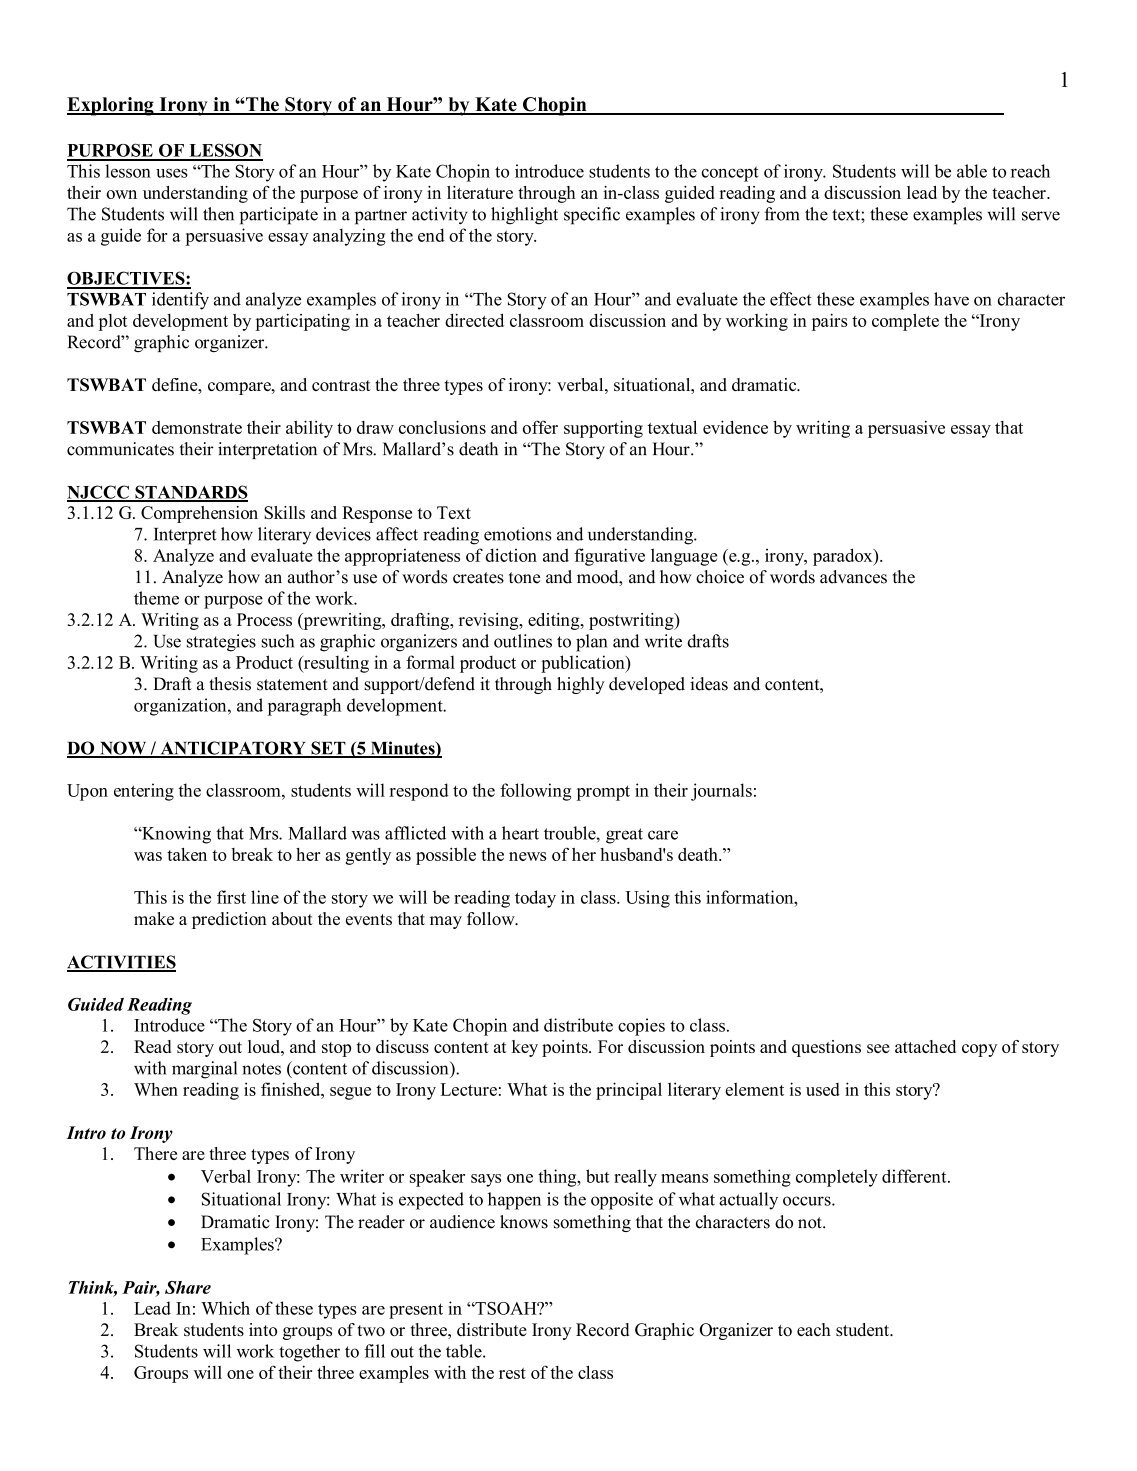 Cause And Effect Essay Thesis Essay On Irony On Irony Good Comparison Contrast Essay Topics Elephant  Essays Management Writing On Women Examples Of Thesis Essays also Persuasive Essay Example High School Elephant Essay Essay On Irony Best Shooting An Elephant Images An  High School Application Essay Sample